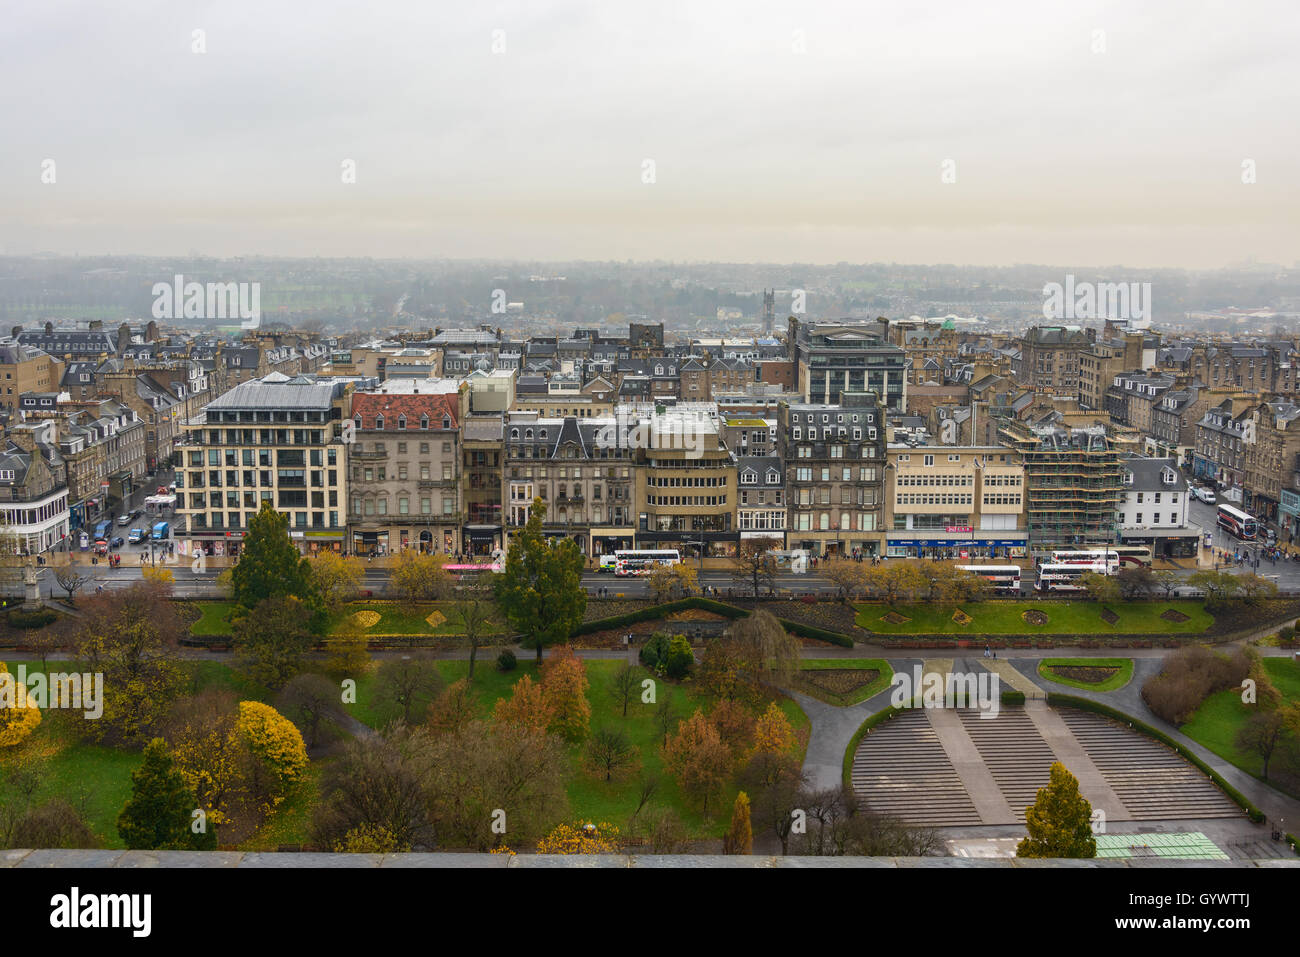 Edinburgh Princes Street Gardens and the city as seen from the castle in Scotland, UK - Stock Image